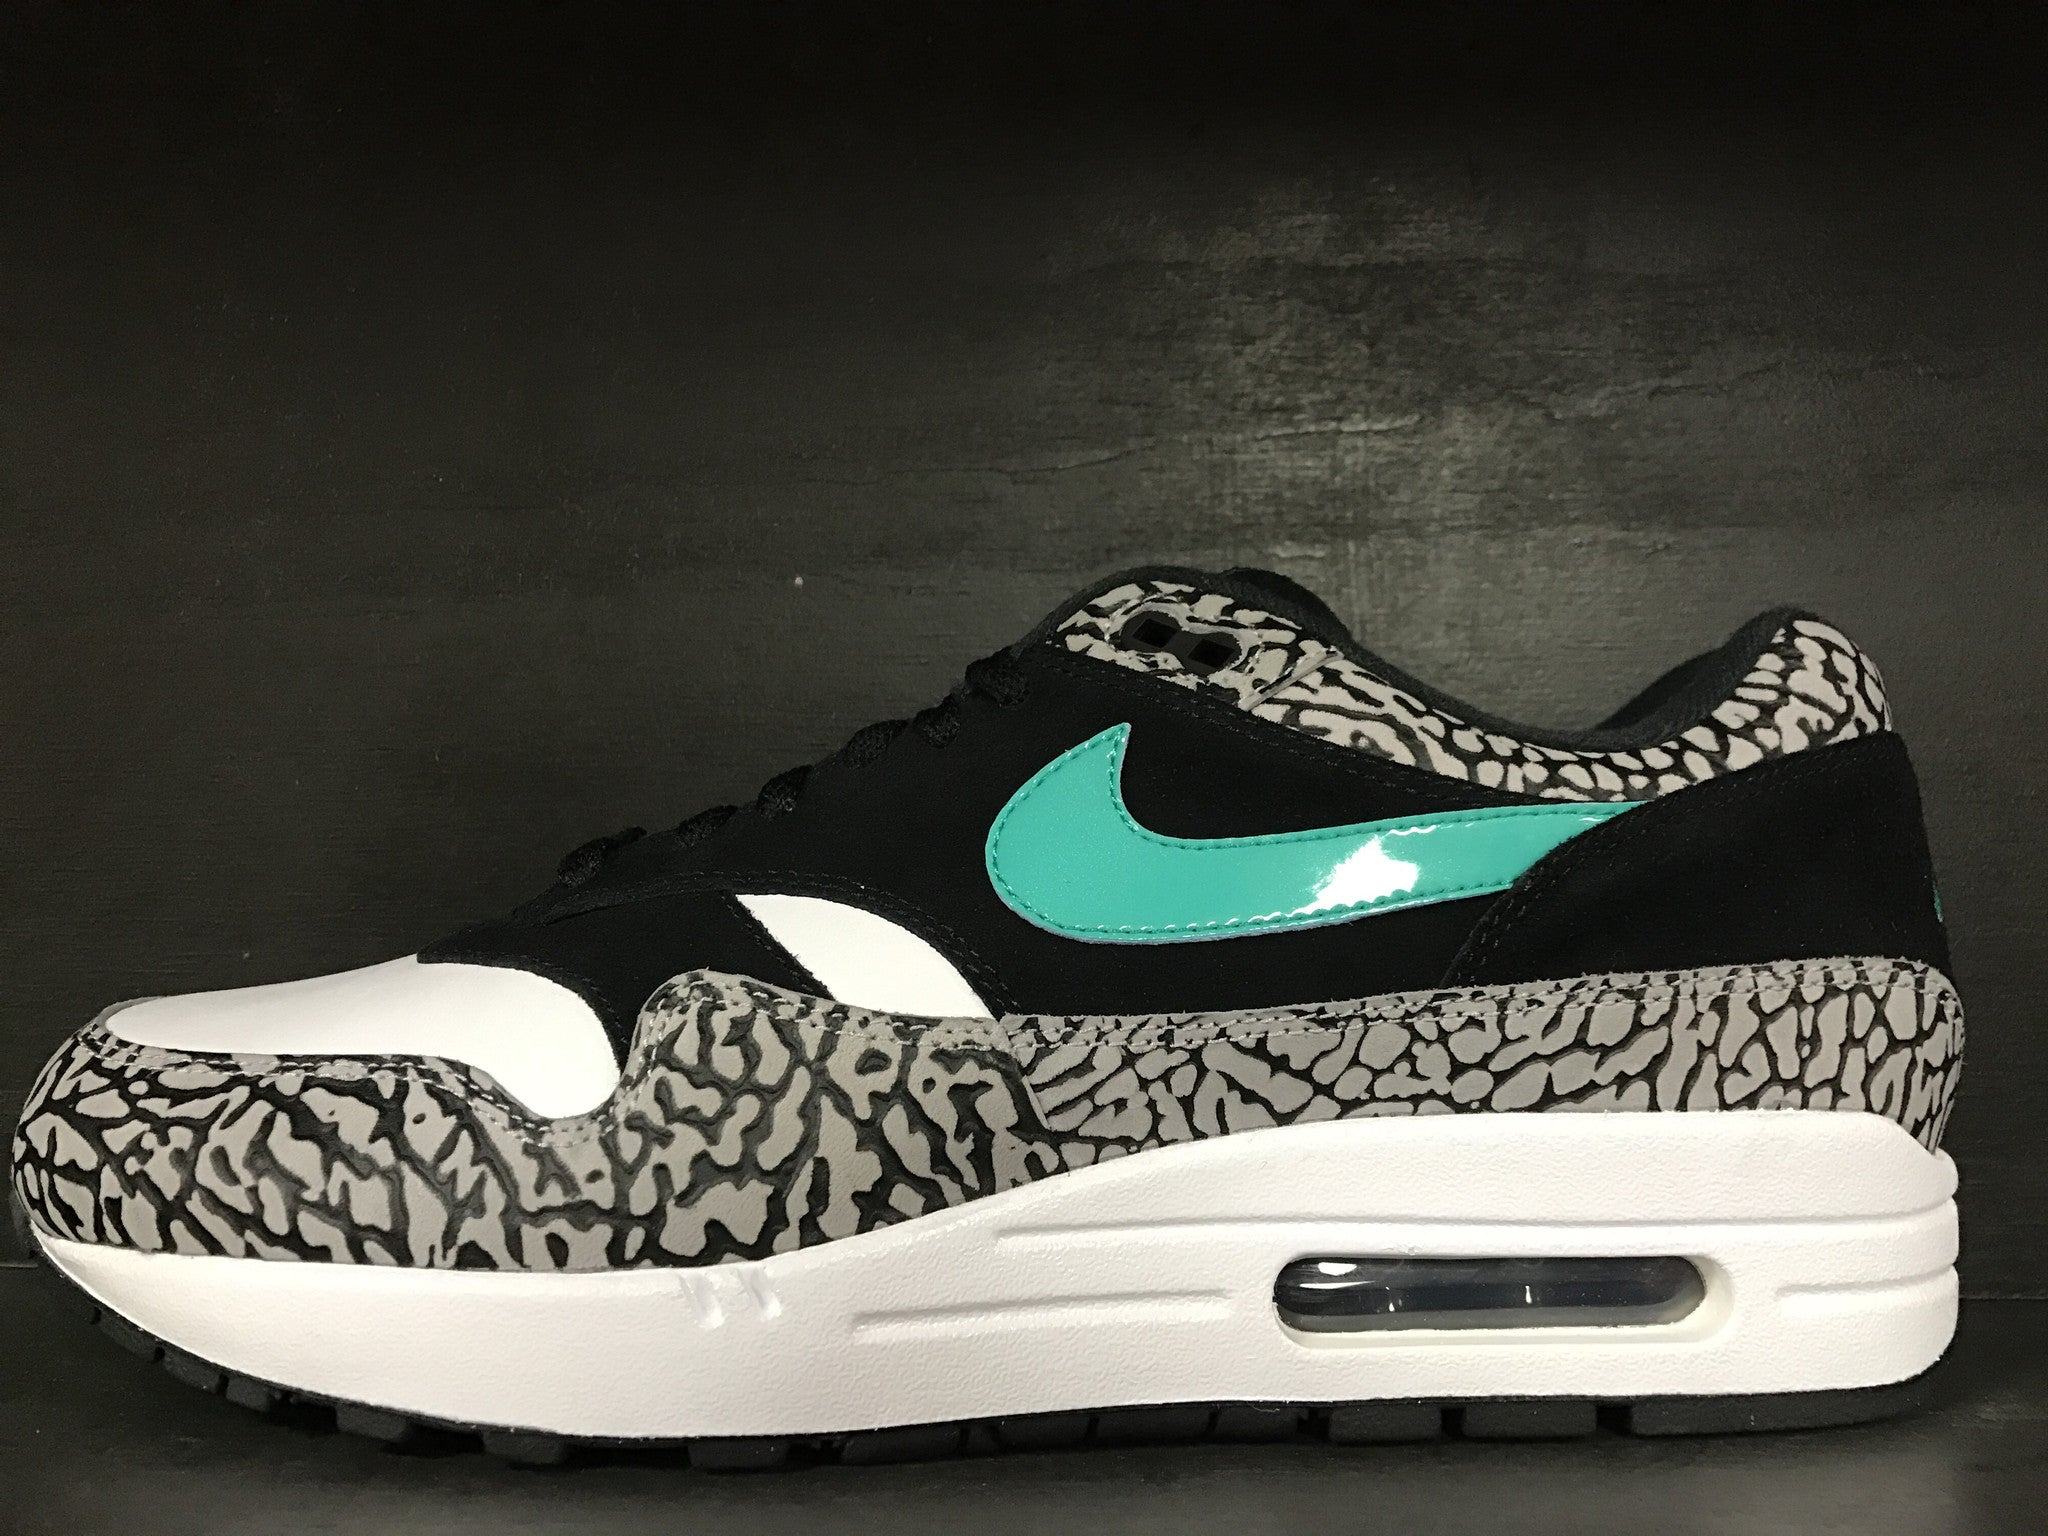 Nike Air Max 1 PRM Retro 'Atmos'